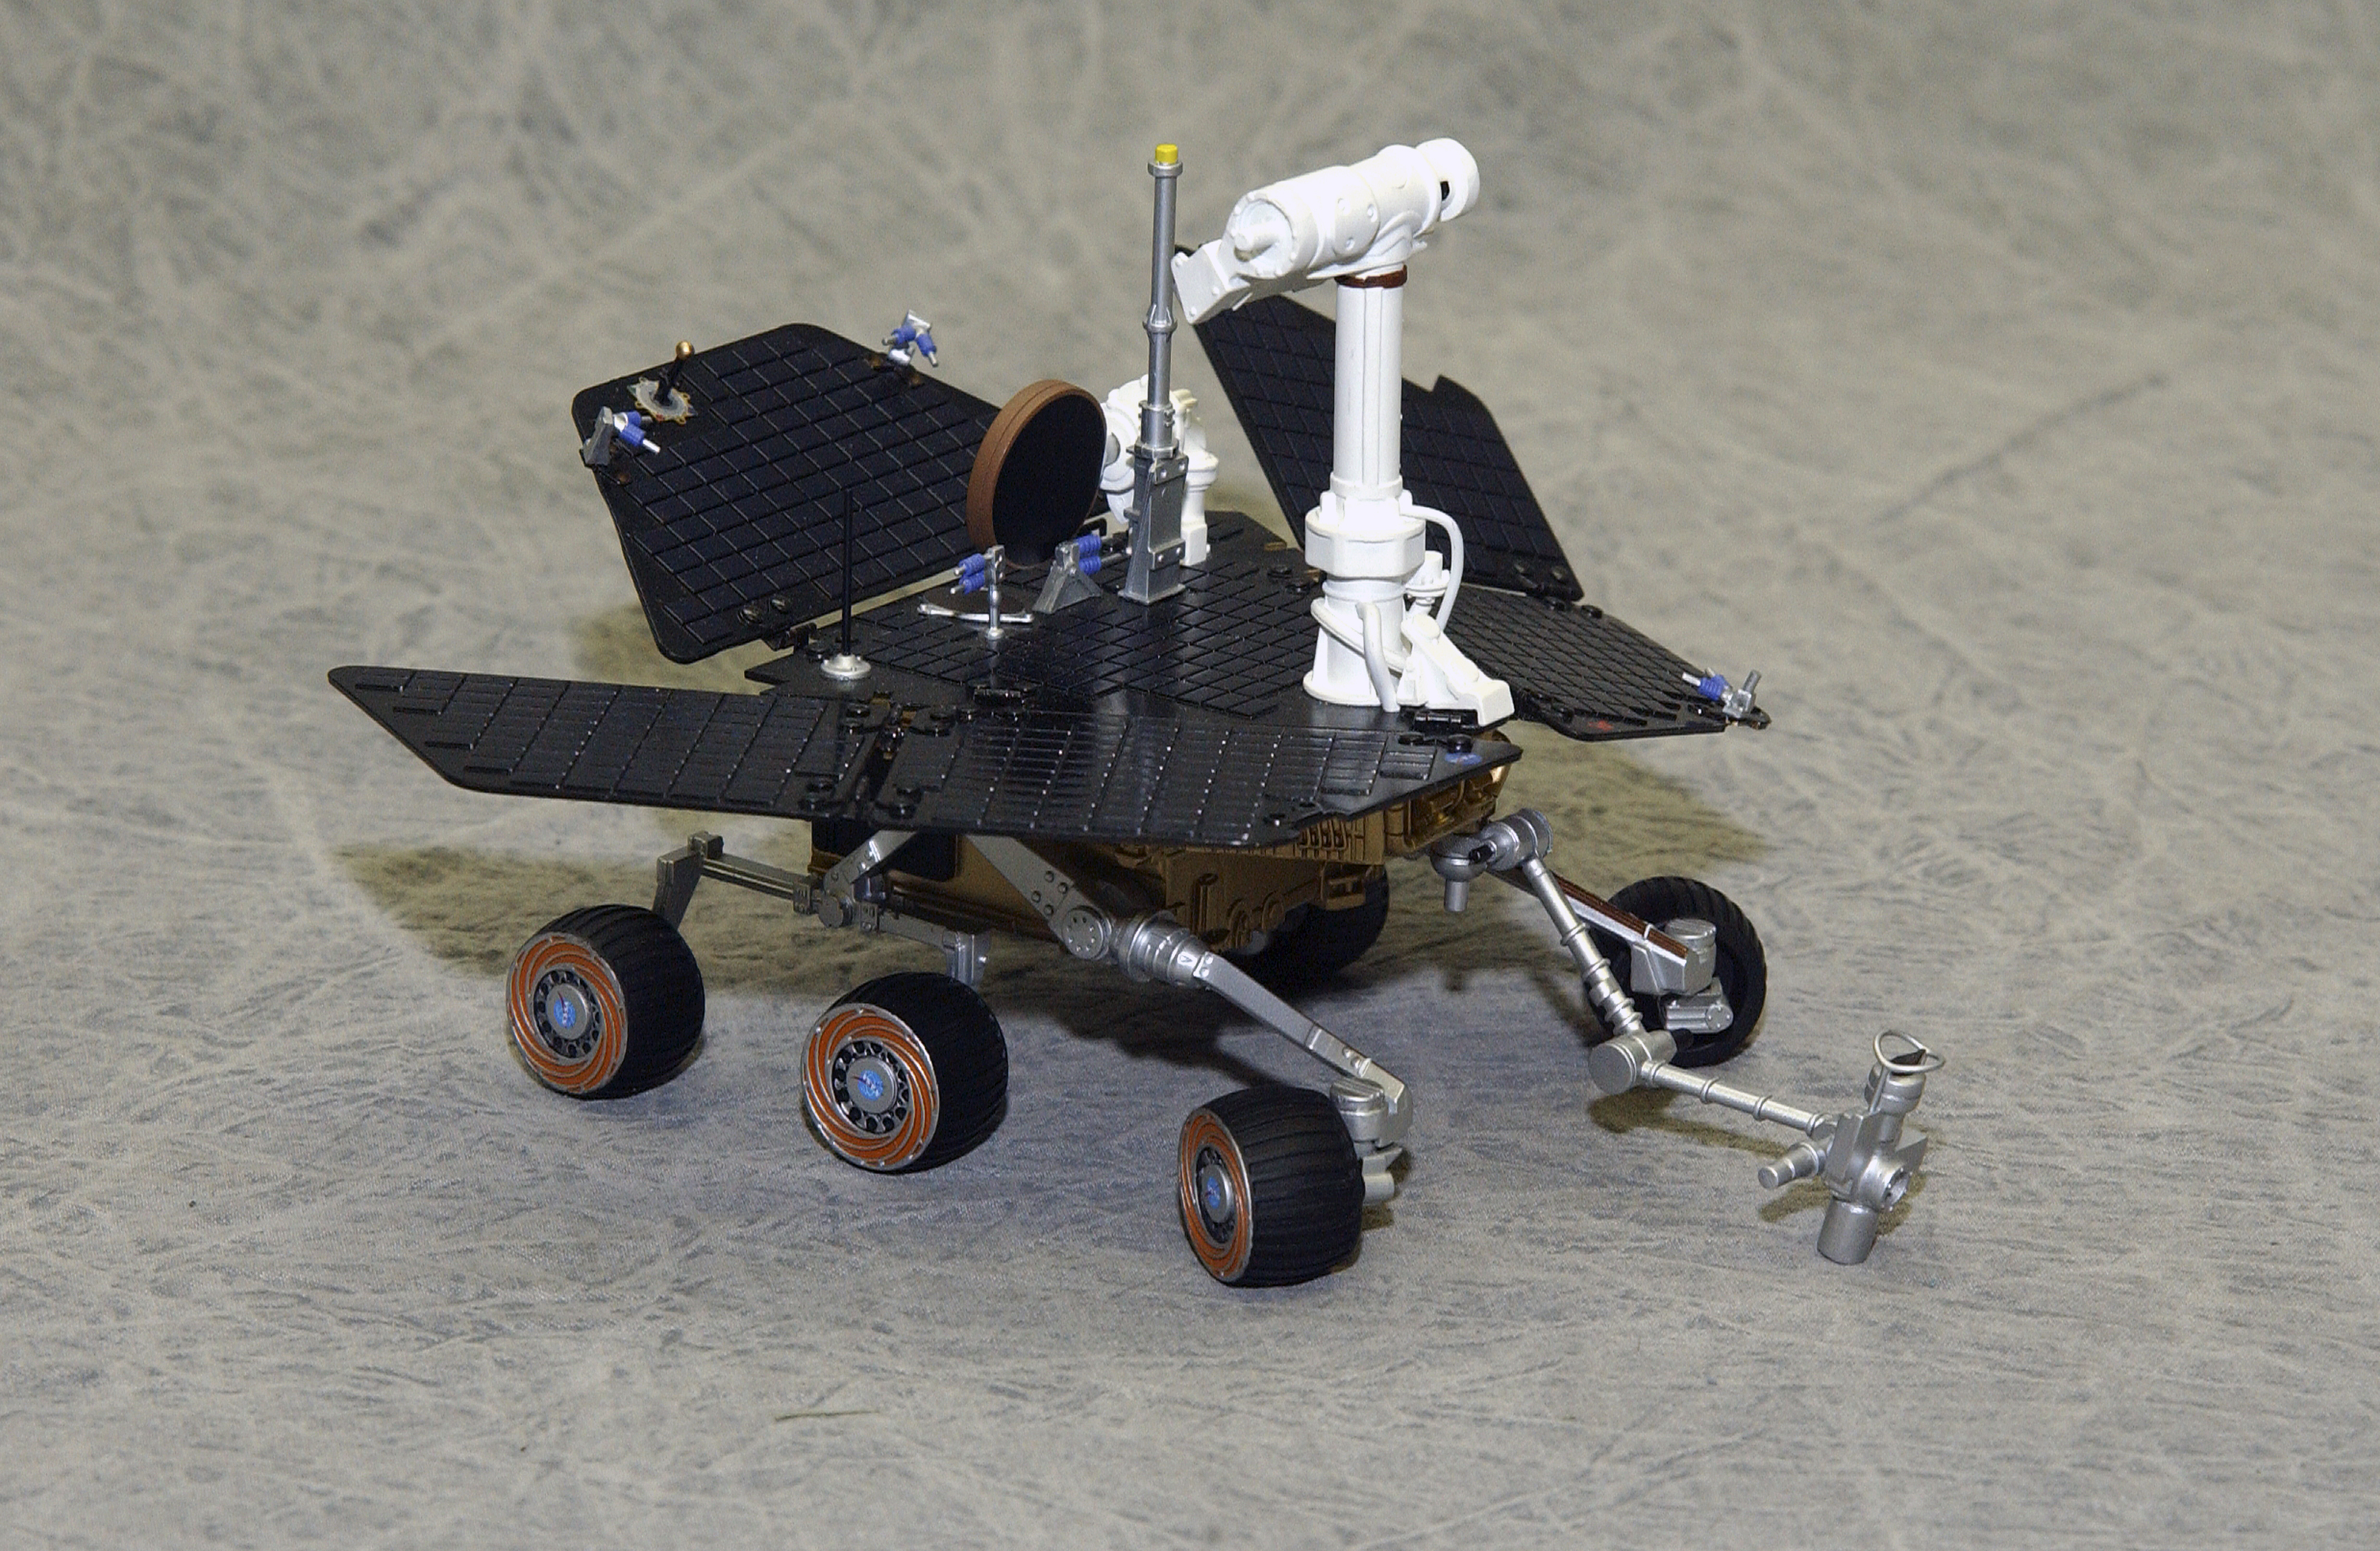 curiosity rover scale model - photo #32